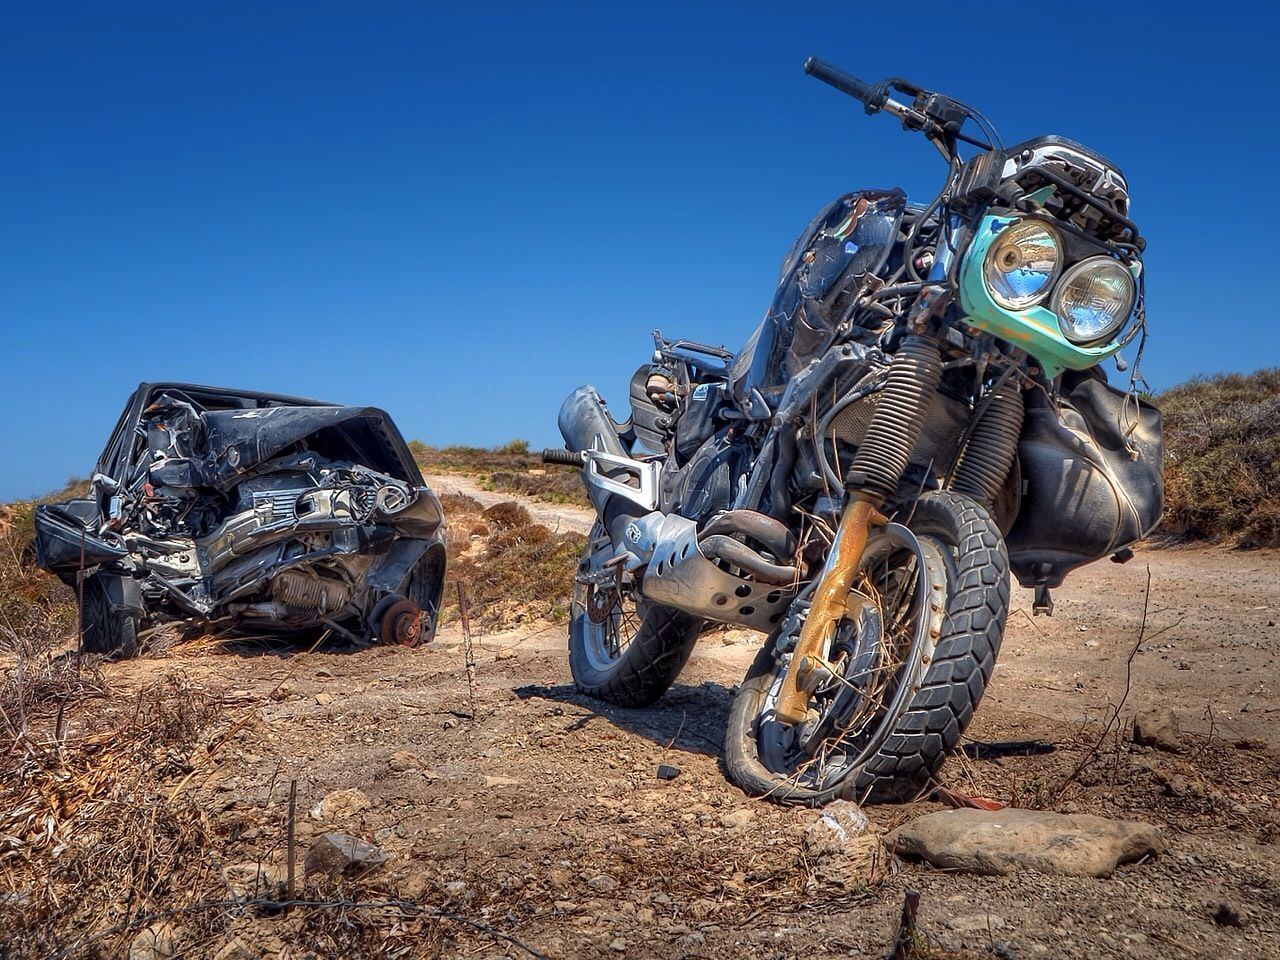 Beautiful stock photos of motorcycle, Abandoned, Blue, Car, Car Accident